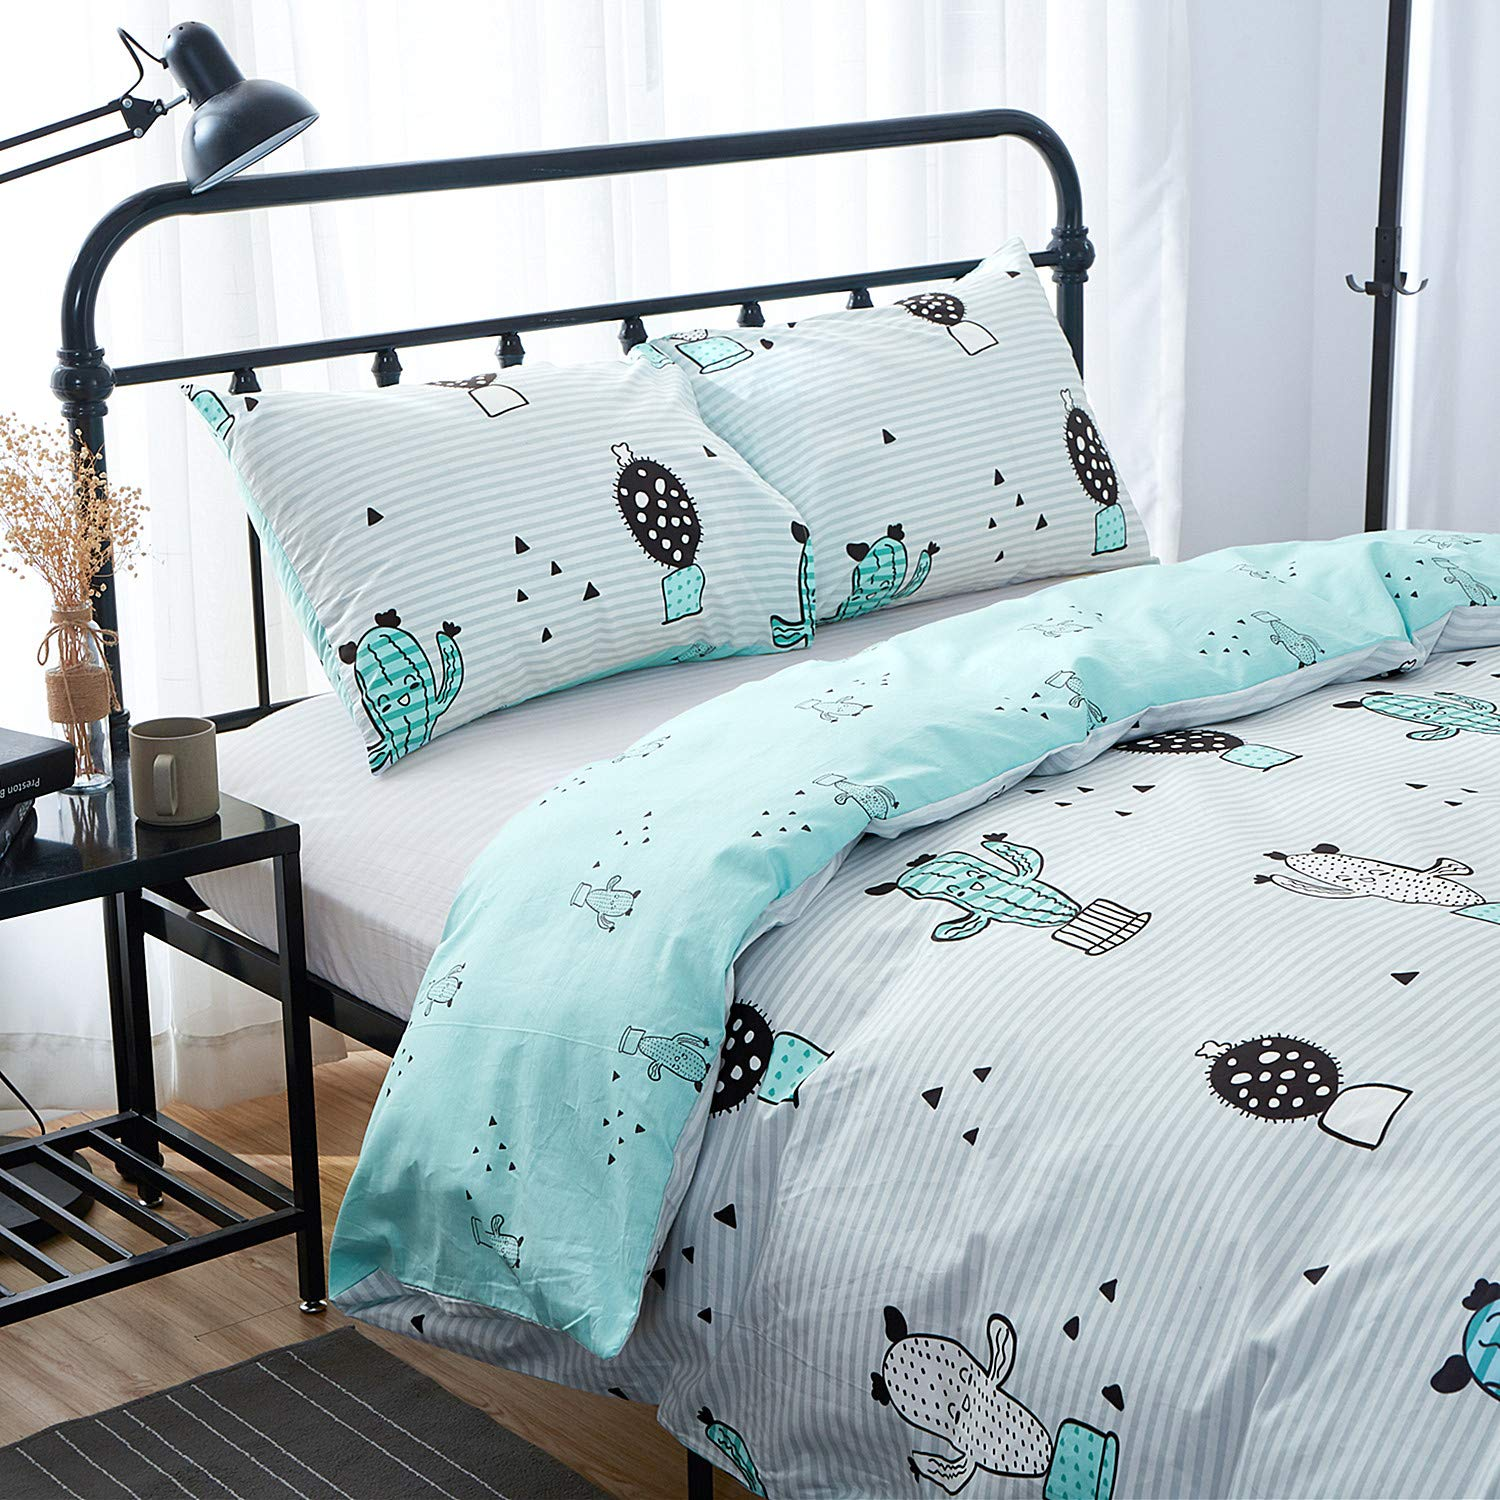 Jumeey Duvet Cover Bear Print 3 Pieces Animal Kids Bedding Sets Twin Yellow for Boys Girls 100/% Cotton Hotel Quality Bedding Collection Soft Hypoallergenic